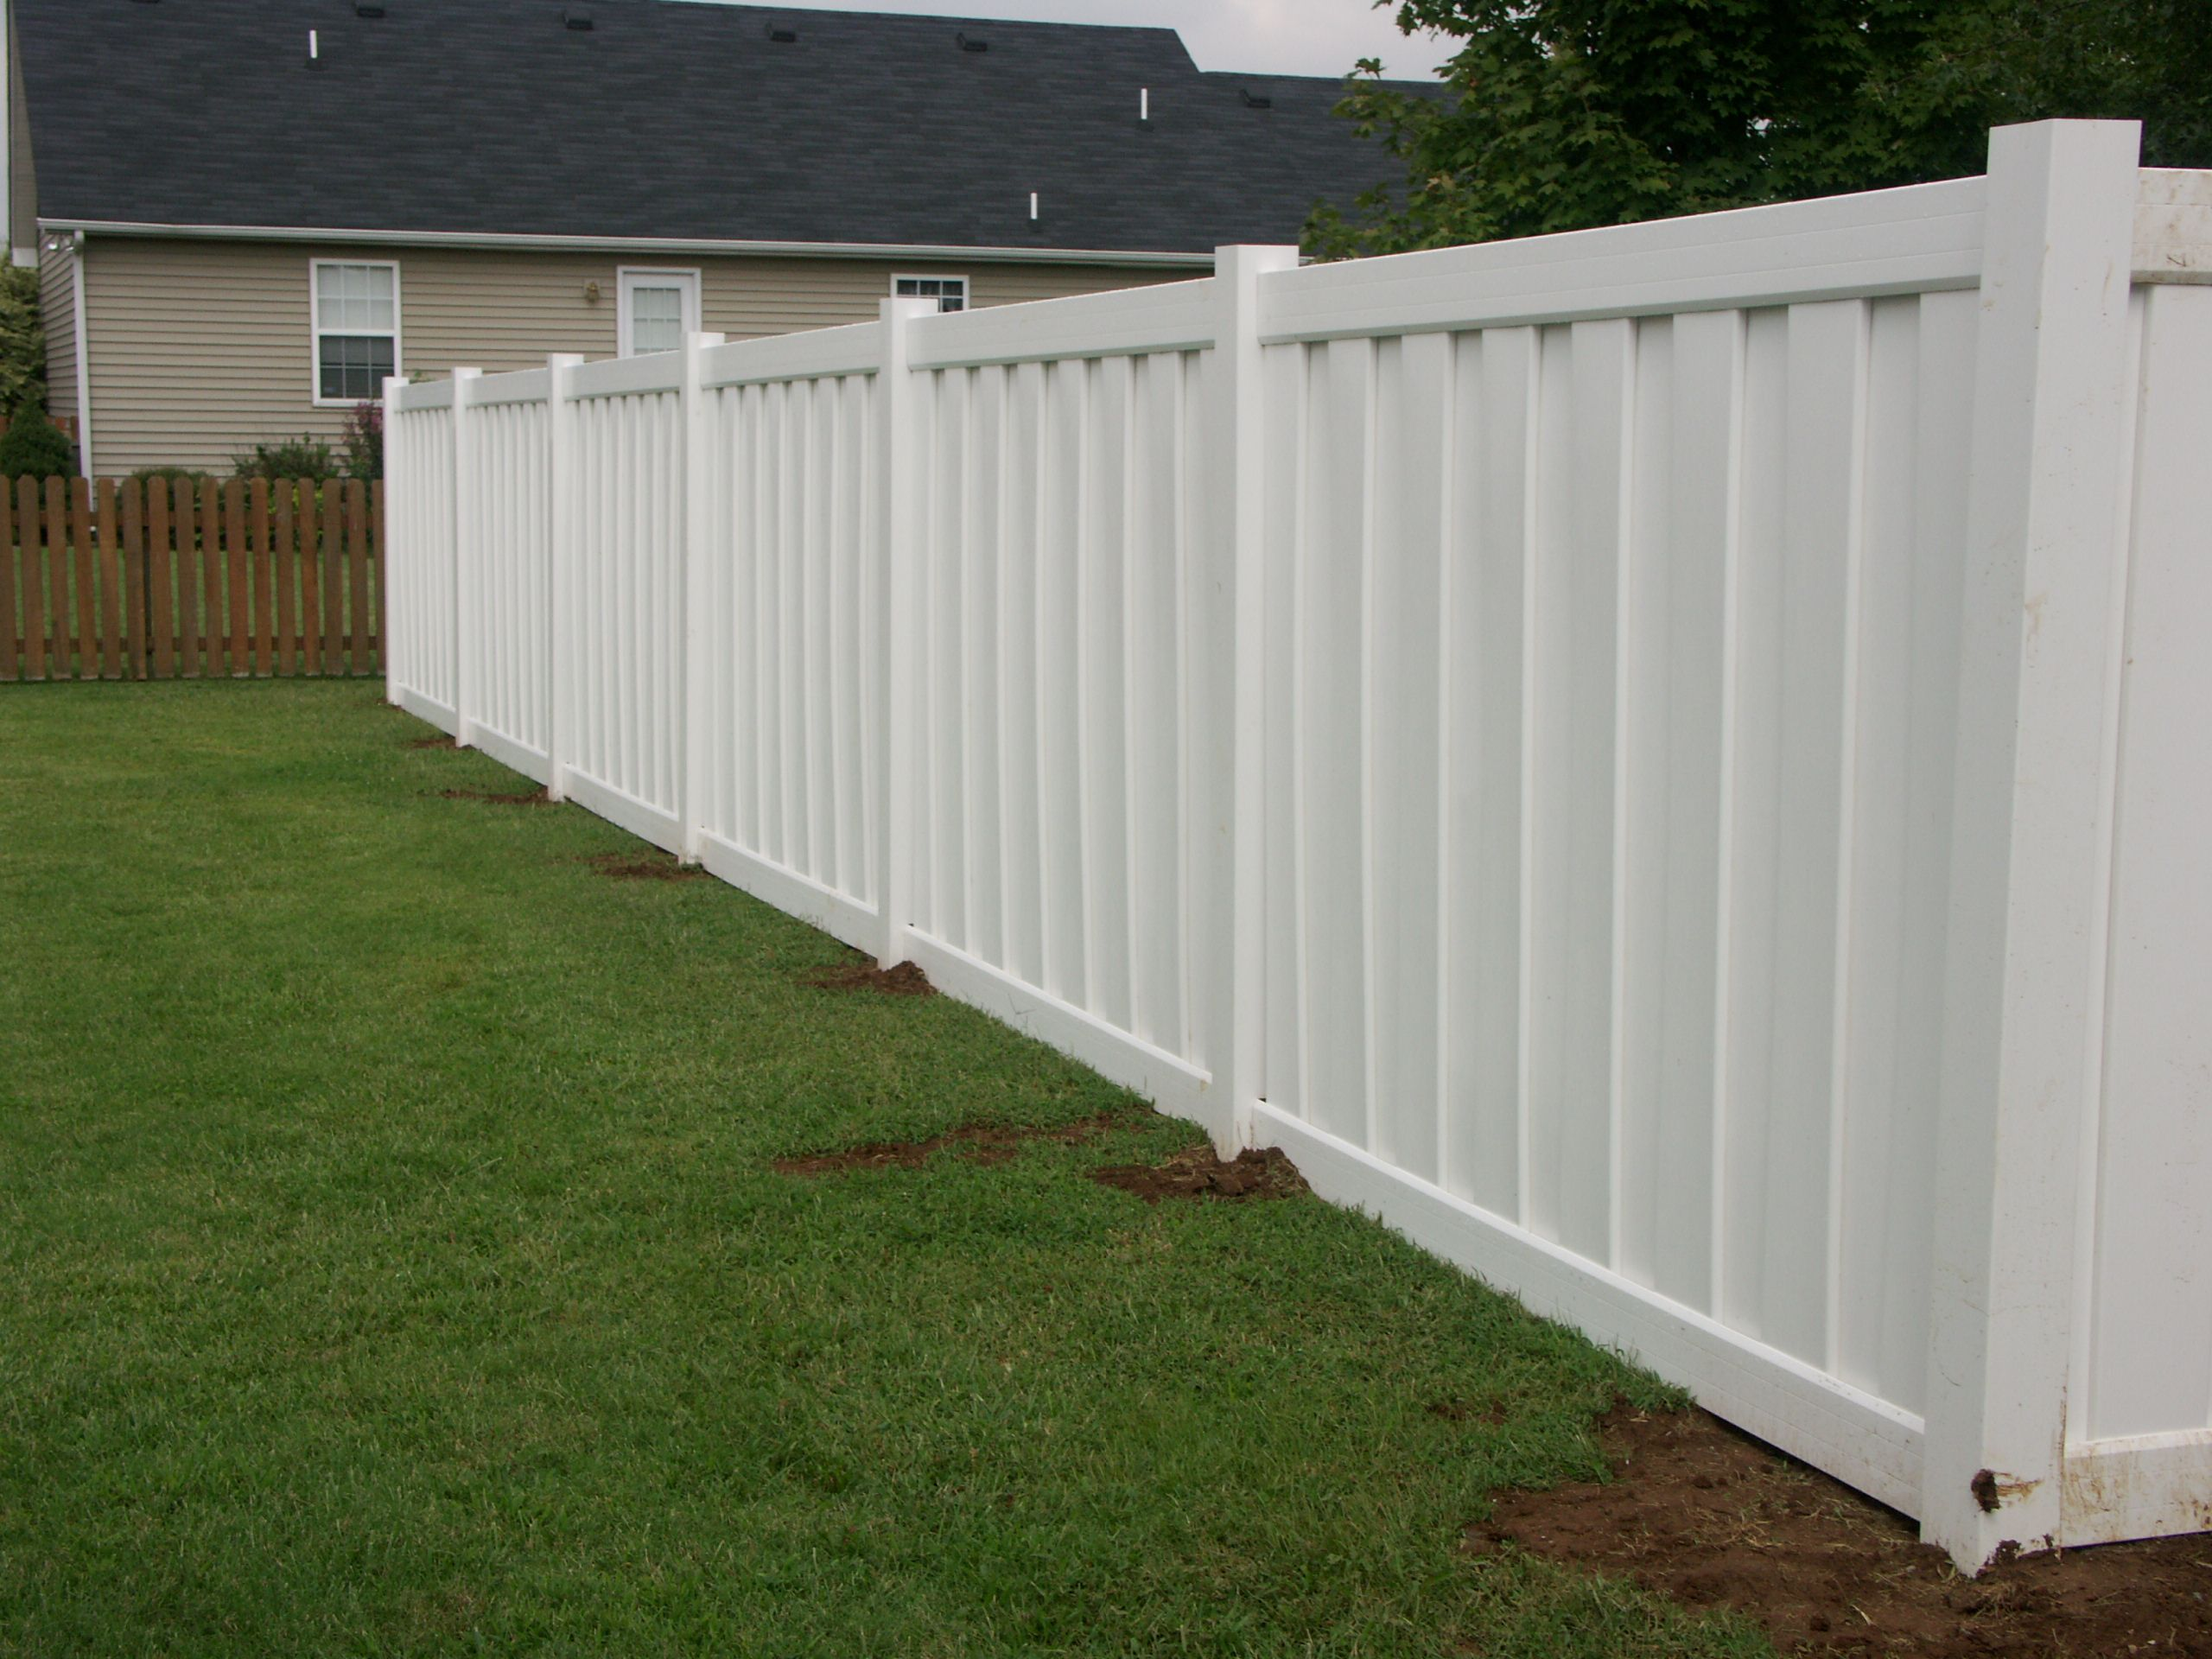 Vinyl Privacy Fence Is Acceptable But A Wood Post And